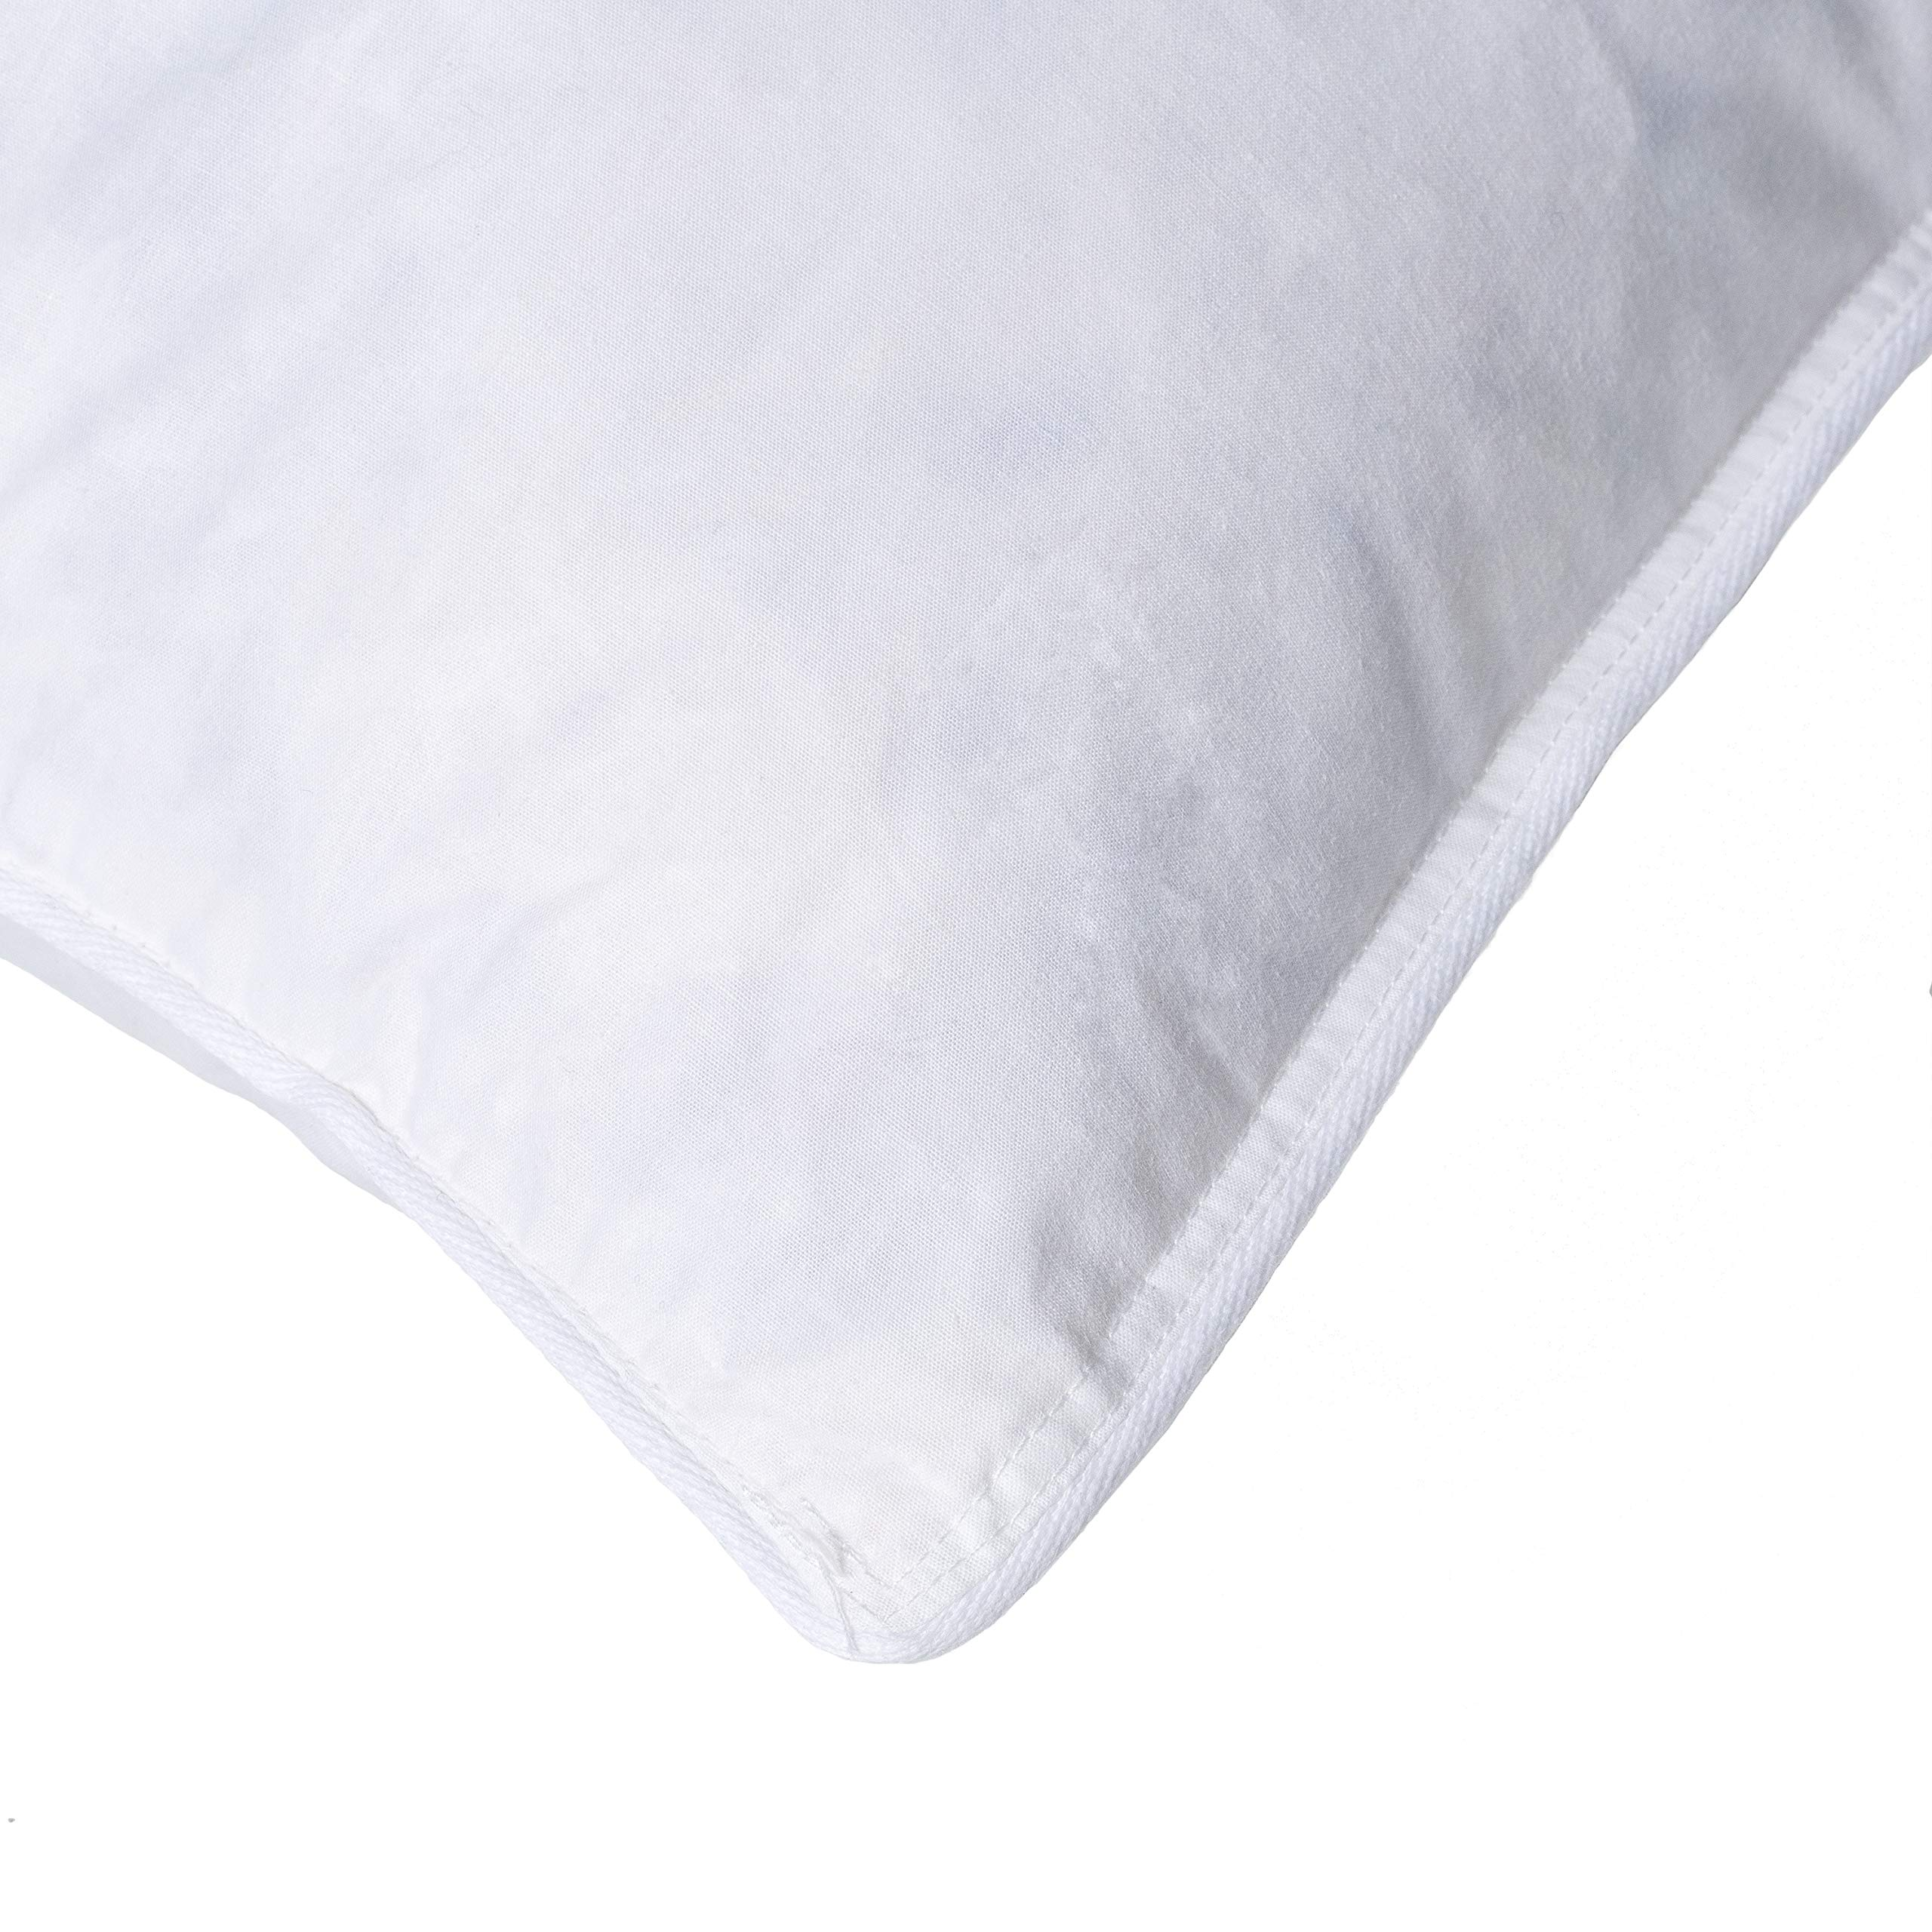 Hotel Madison TruLoft Medium Firm Feather Pillow (Set of 4) King by Hotel Madison (Image #4)